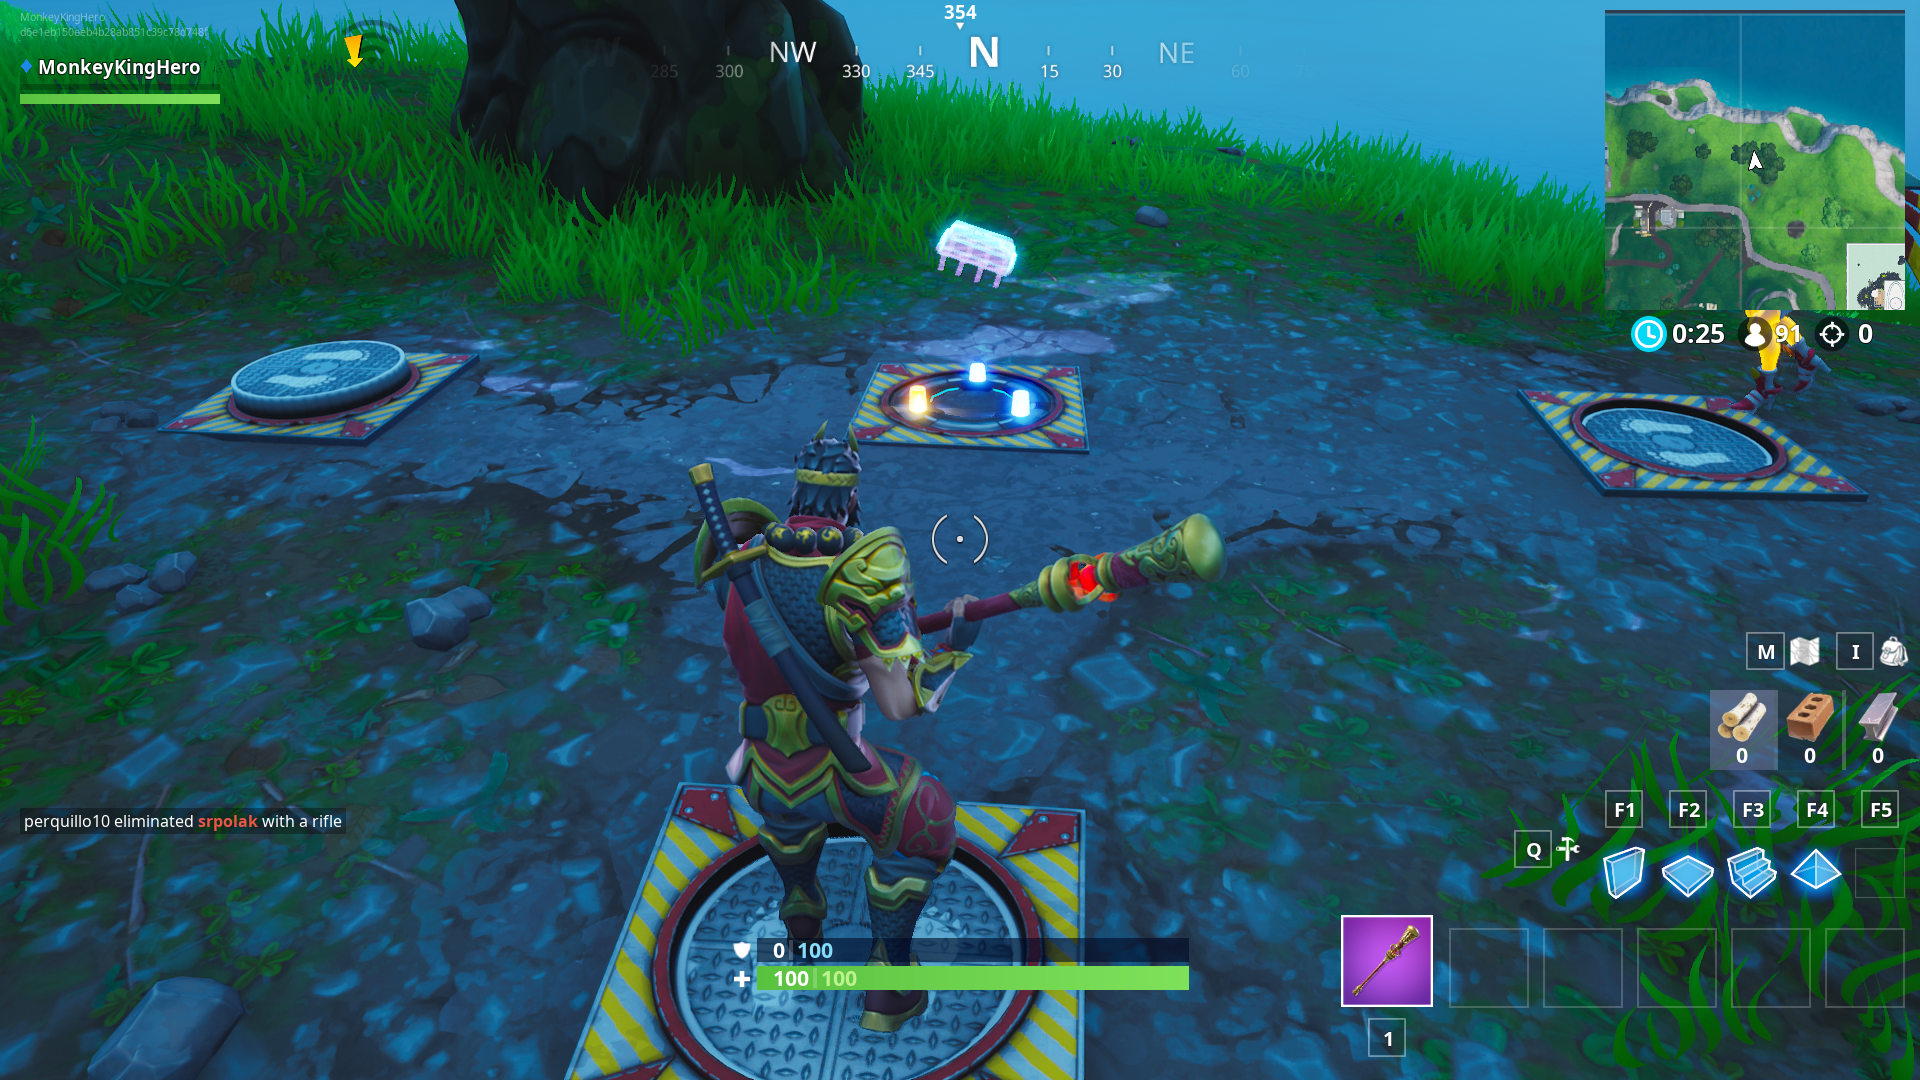 Fortnite Fortbytes 22 Location Fortnite Fortbyte 82 Location Accessible By Solving The Pressure Plate Puzzle Nw Of The Block Dot Esports